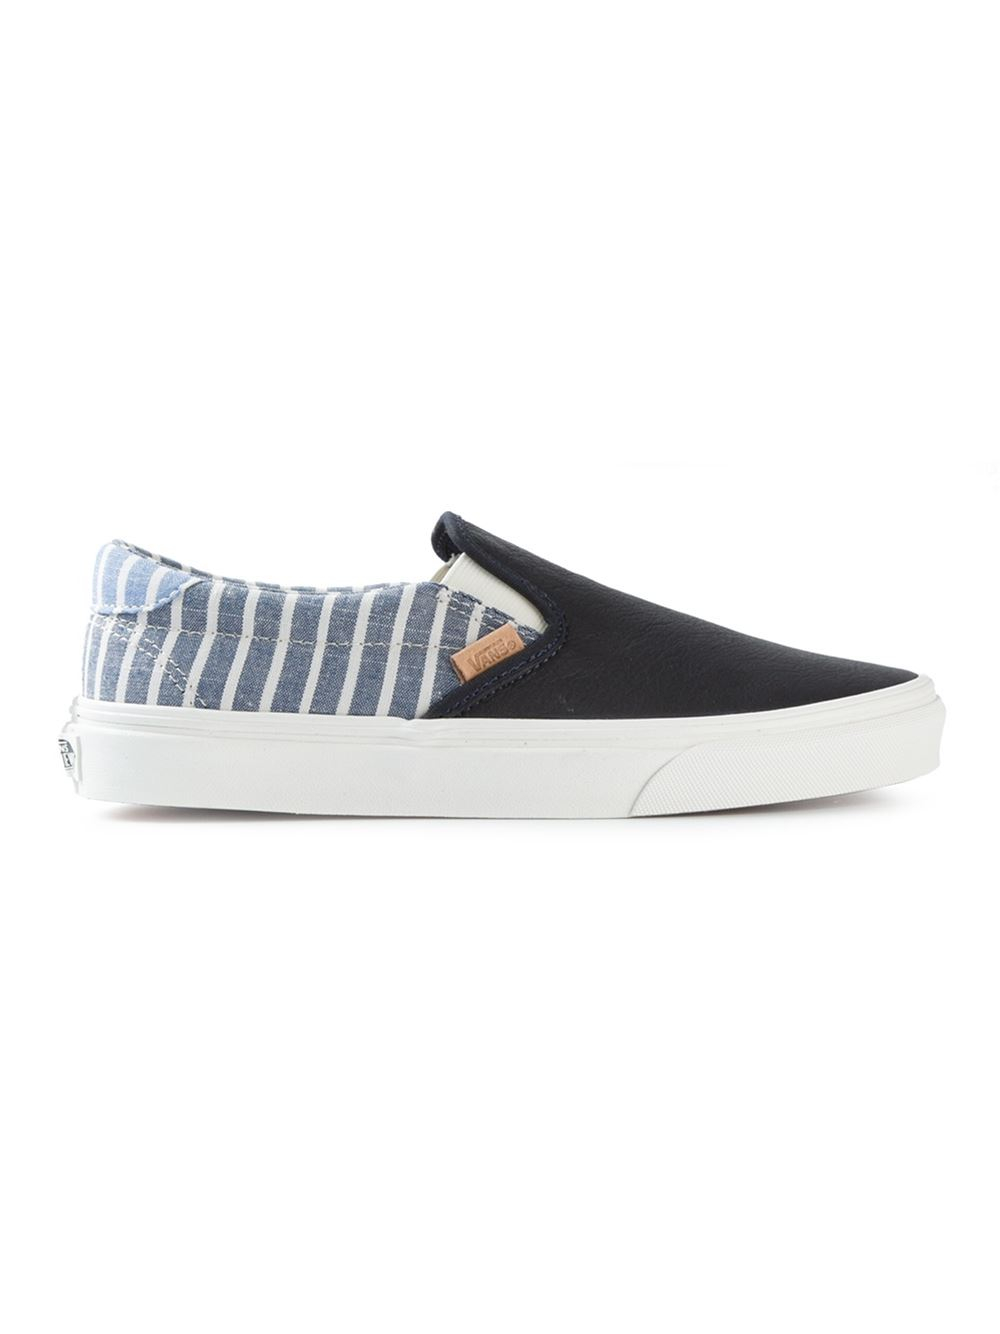 vans sizing guide womens 7.5